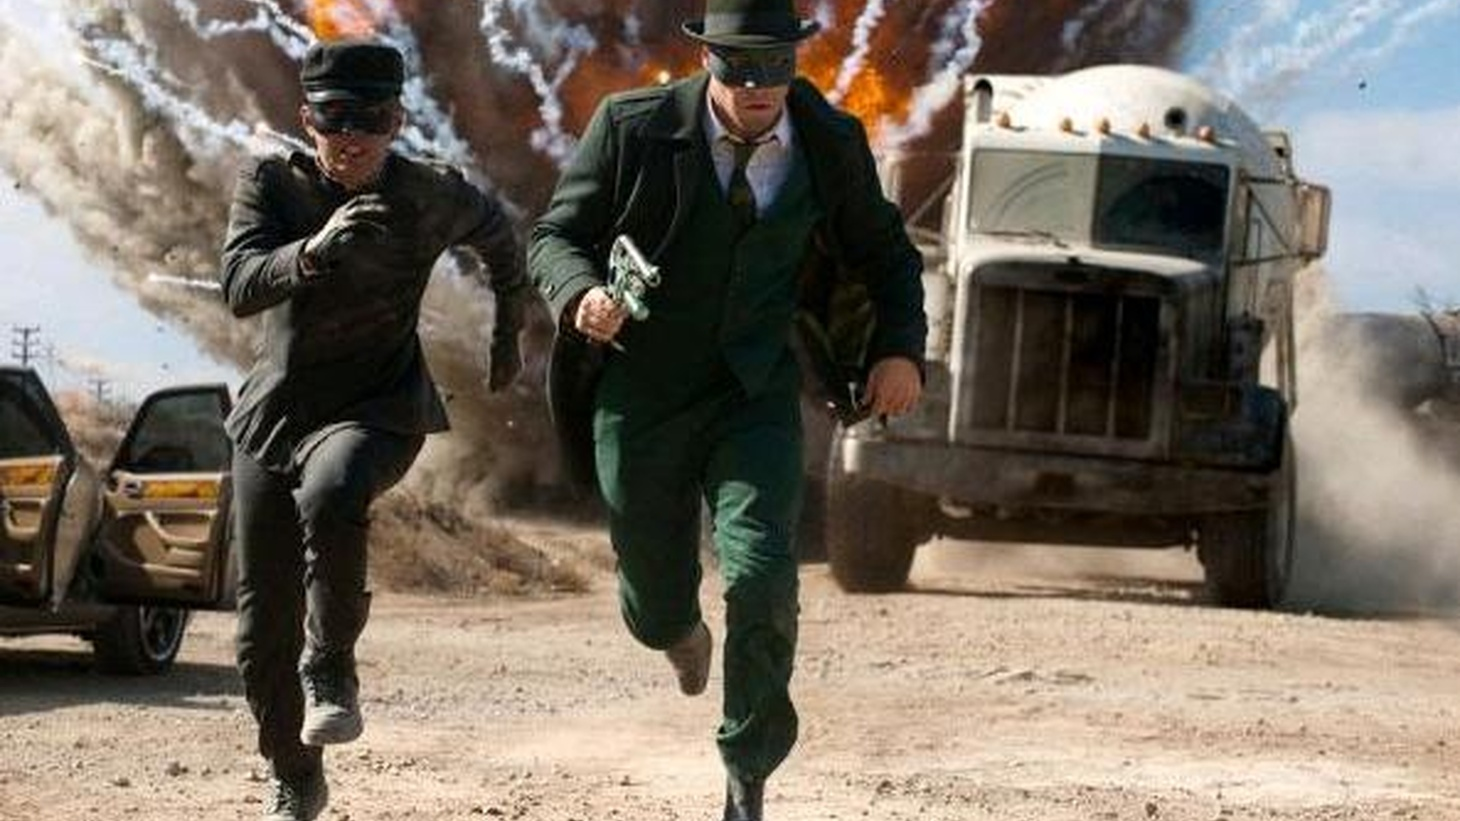 The Green Hornet may not be the end of movies as we know them, though the people who made this atrocity were certainly in there trying. The question -- which amounts to an industrial mystery -- is trying to do what?